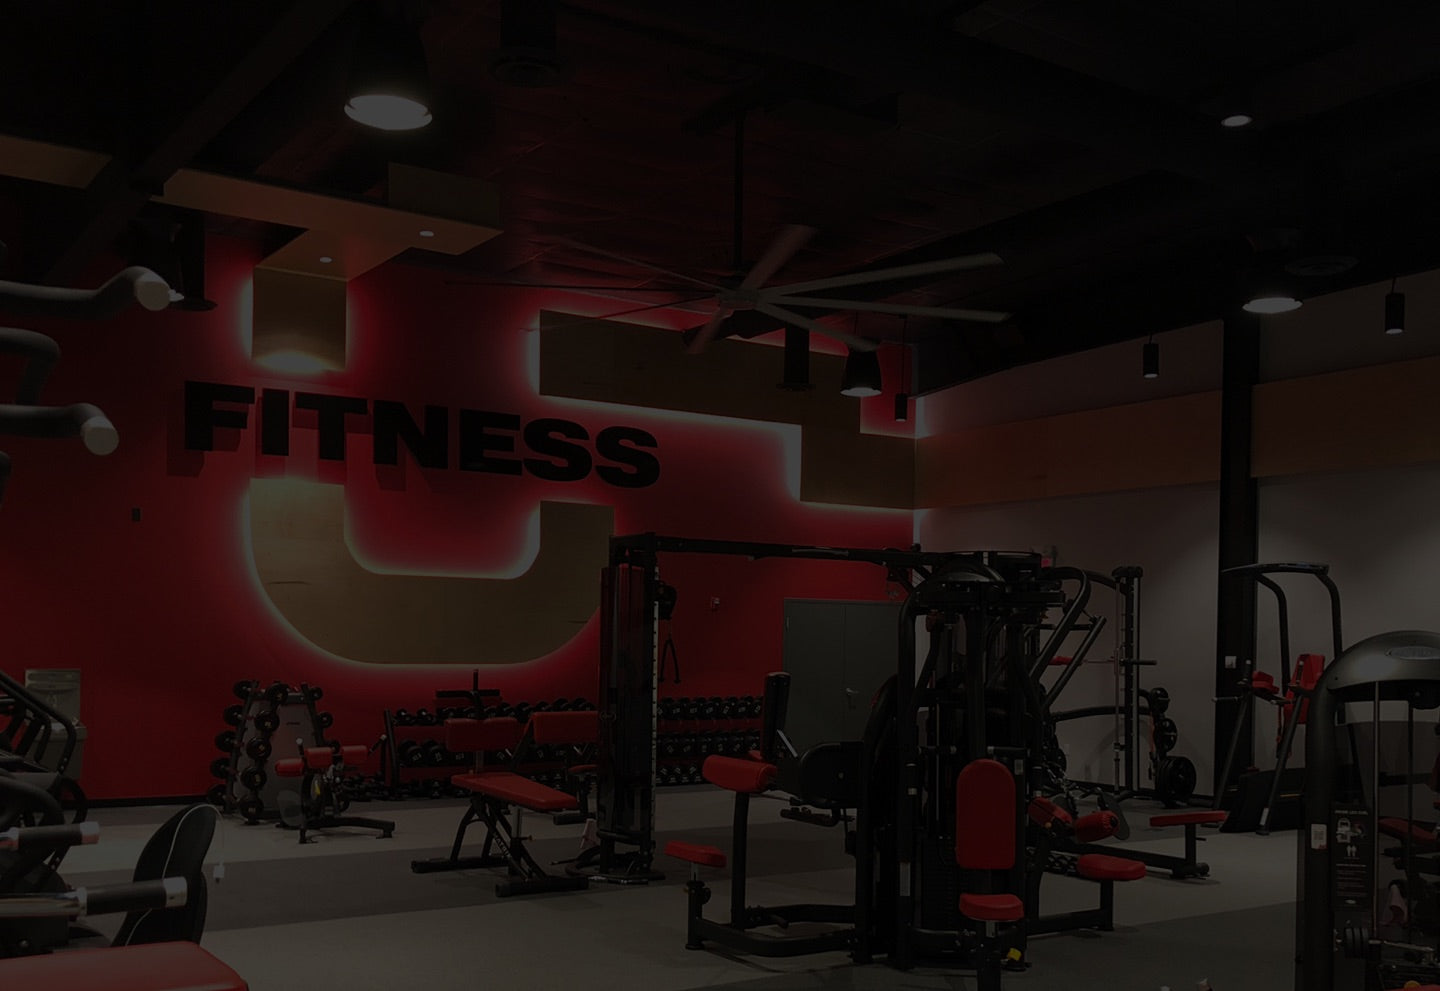 UFitness workout space